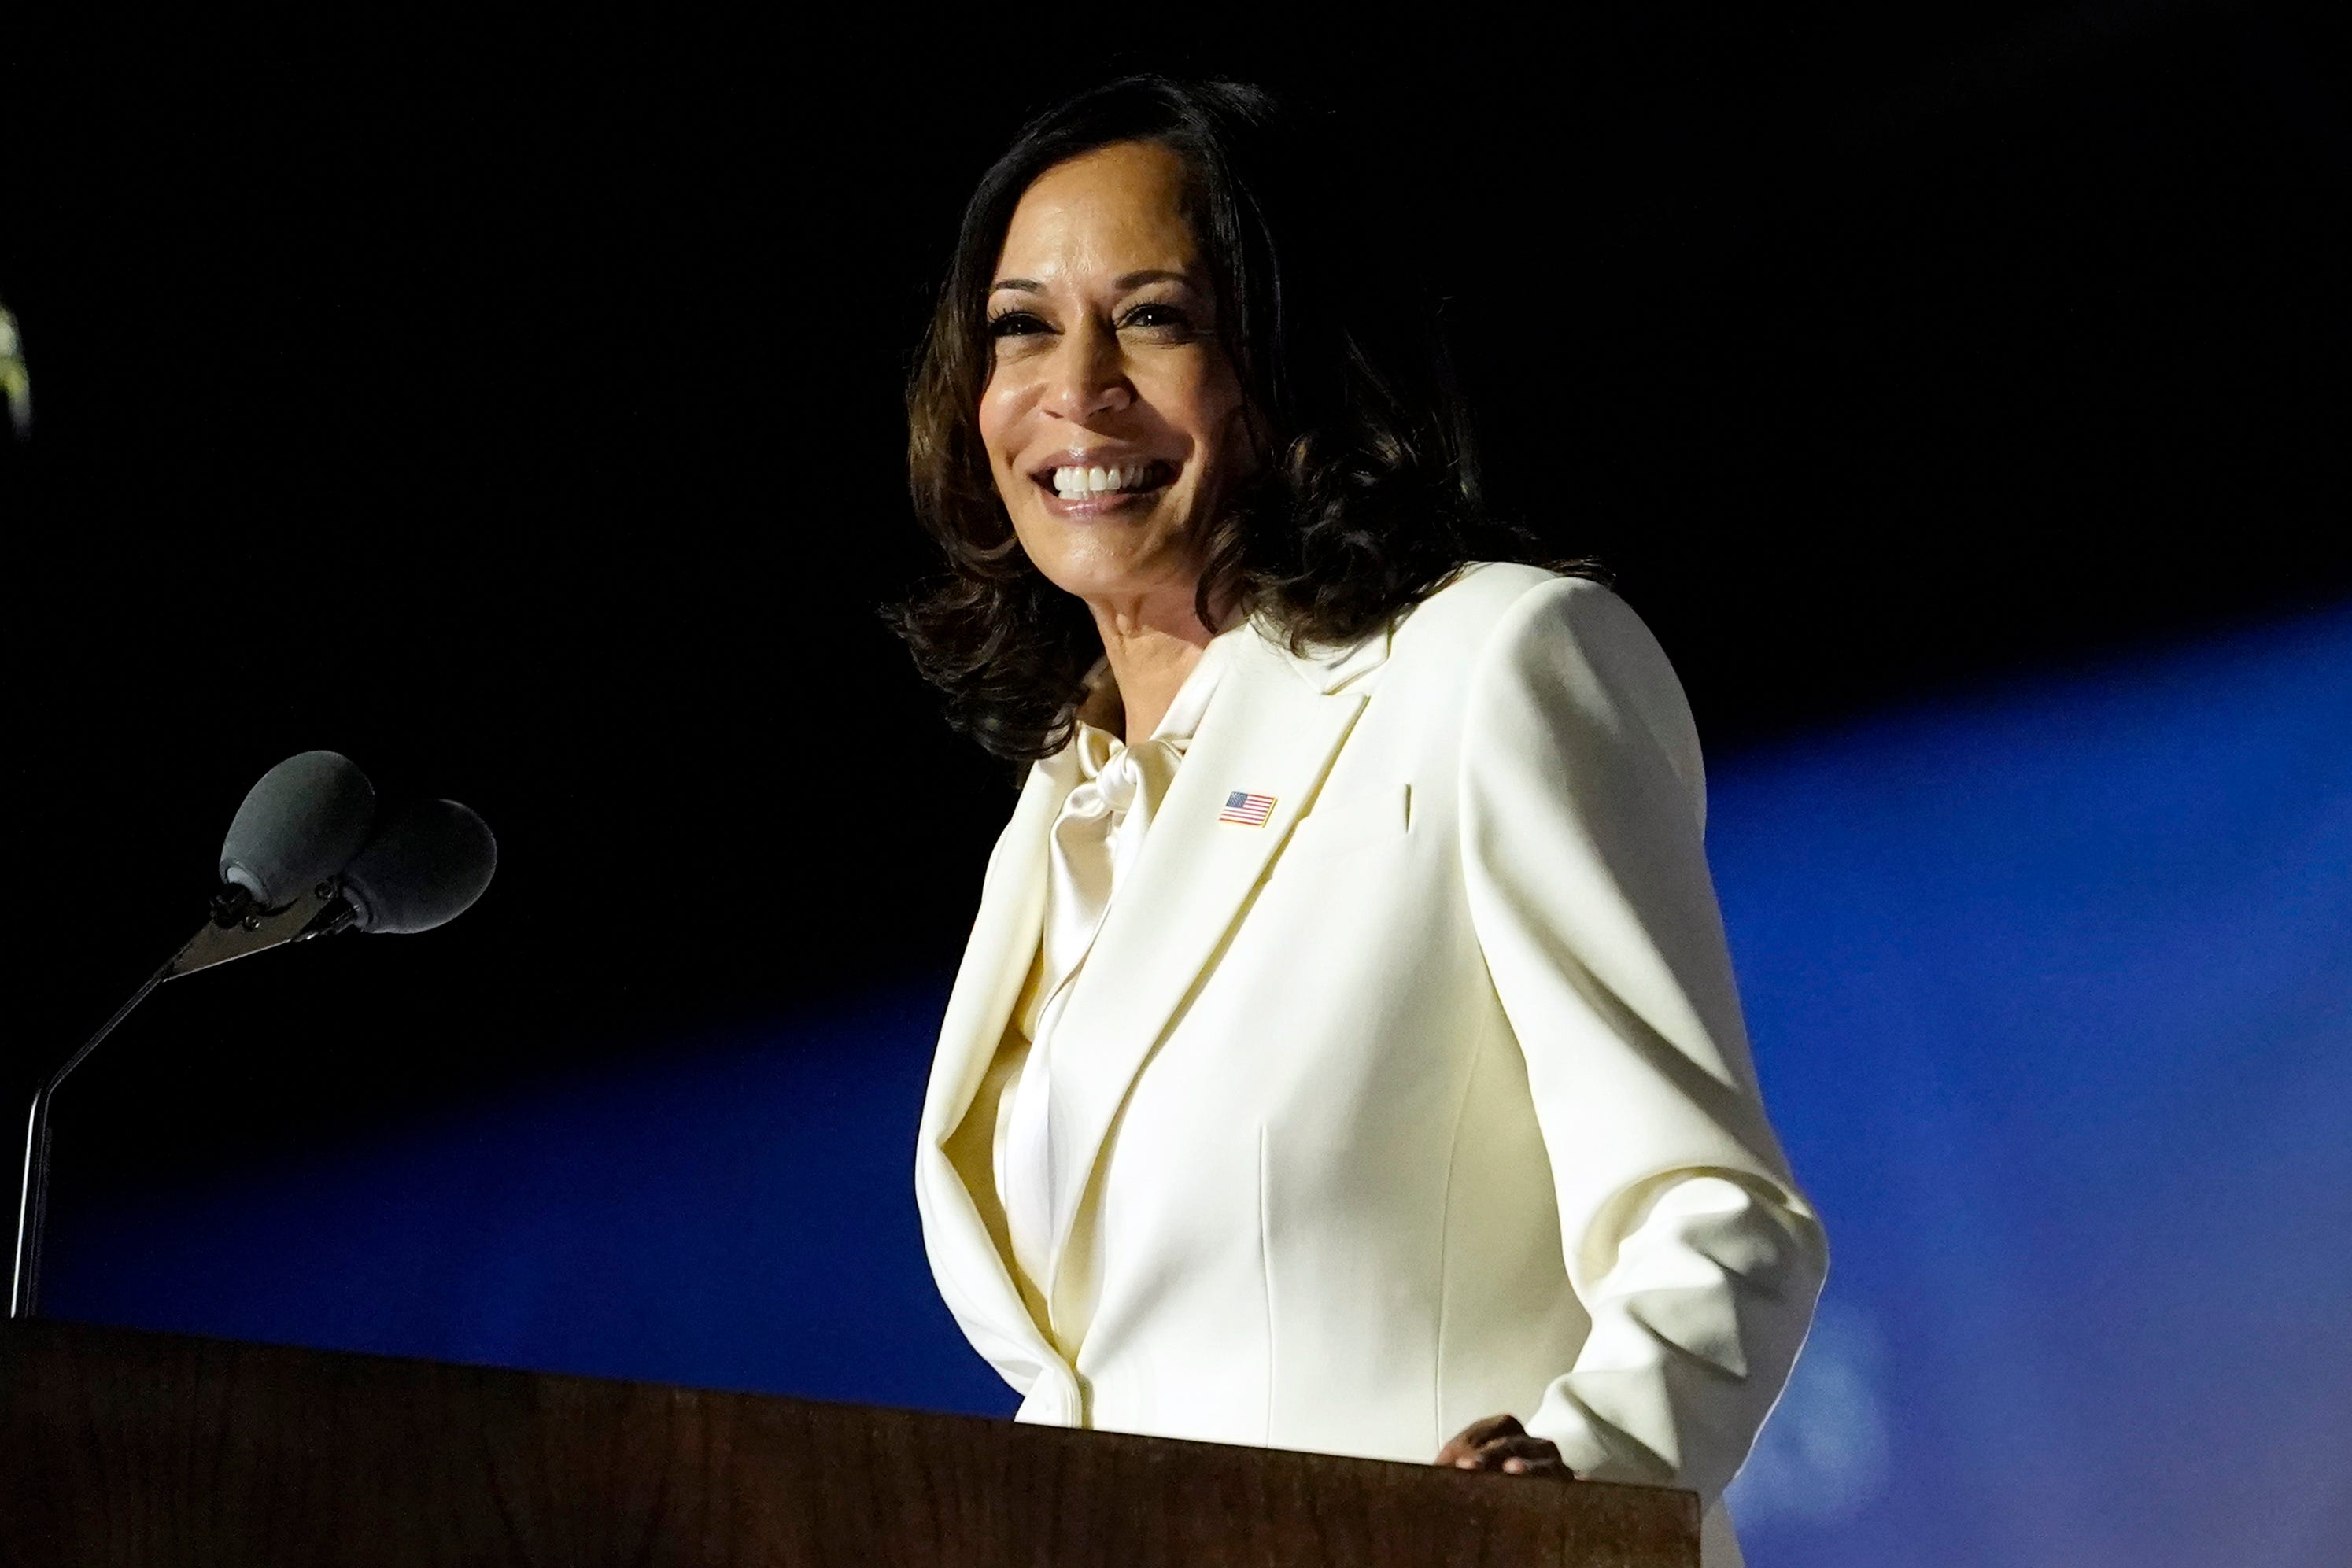 'Washed out mess': Vogue puts Kamala Harris on the cover, but Twitter users aren't happy